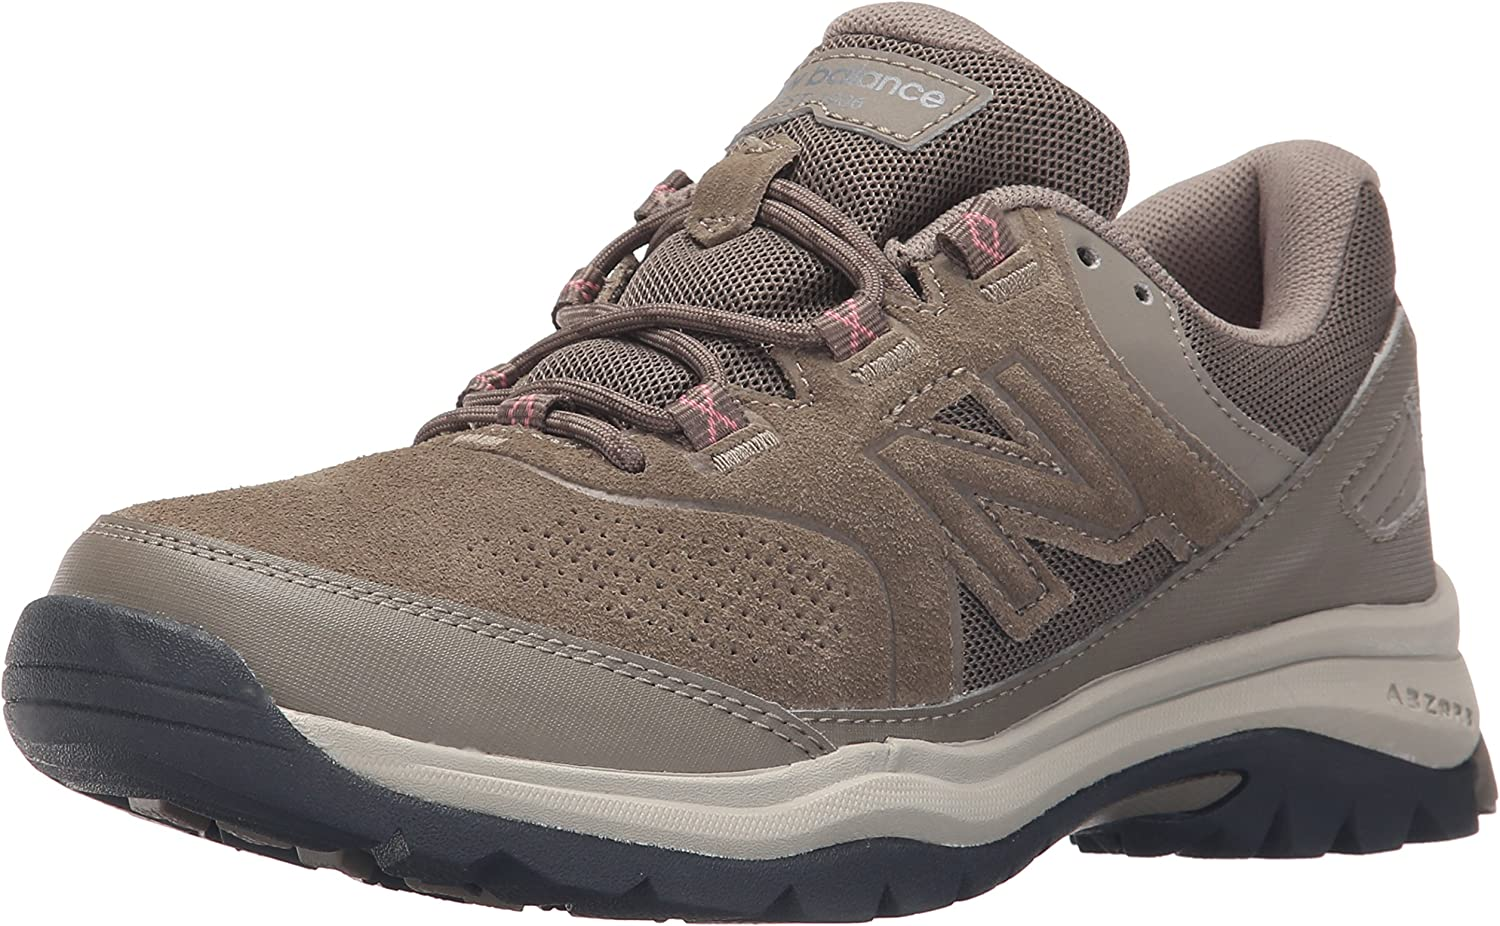 769 Low Rise Hiking Boots